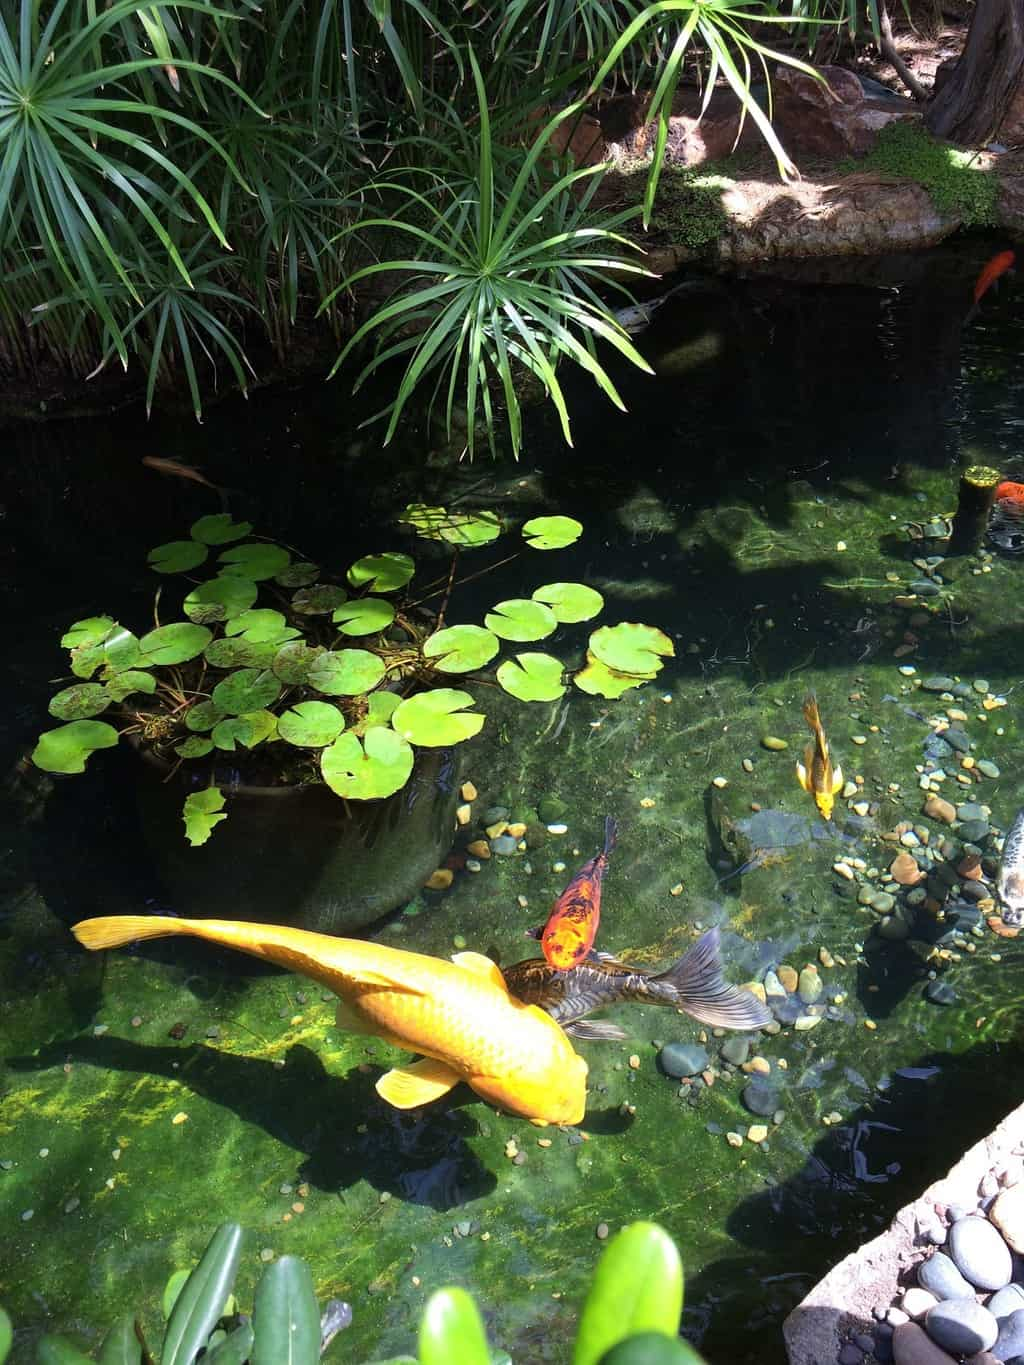 Koi pond with large yellow and orange fish and lily pads